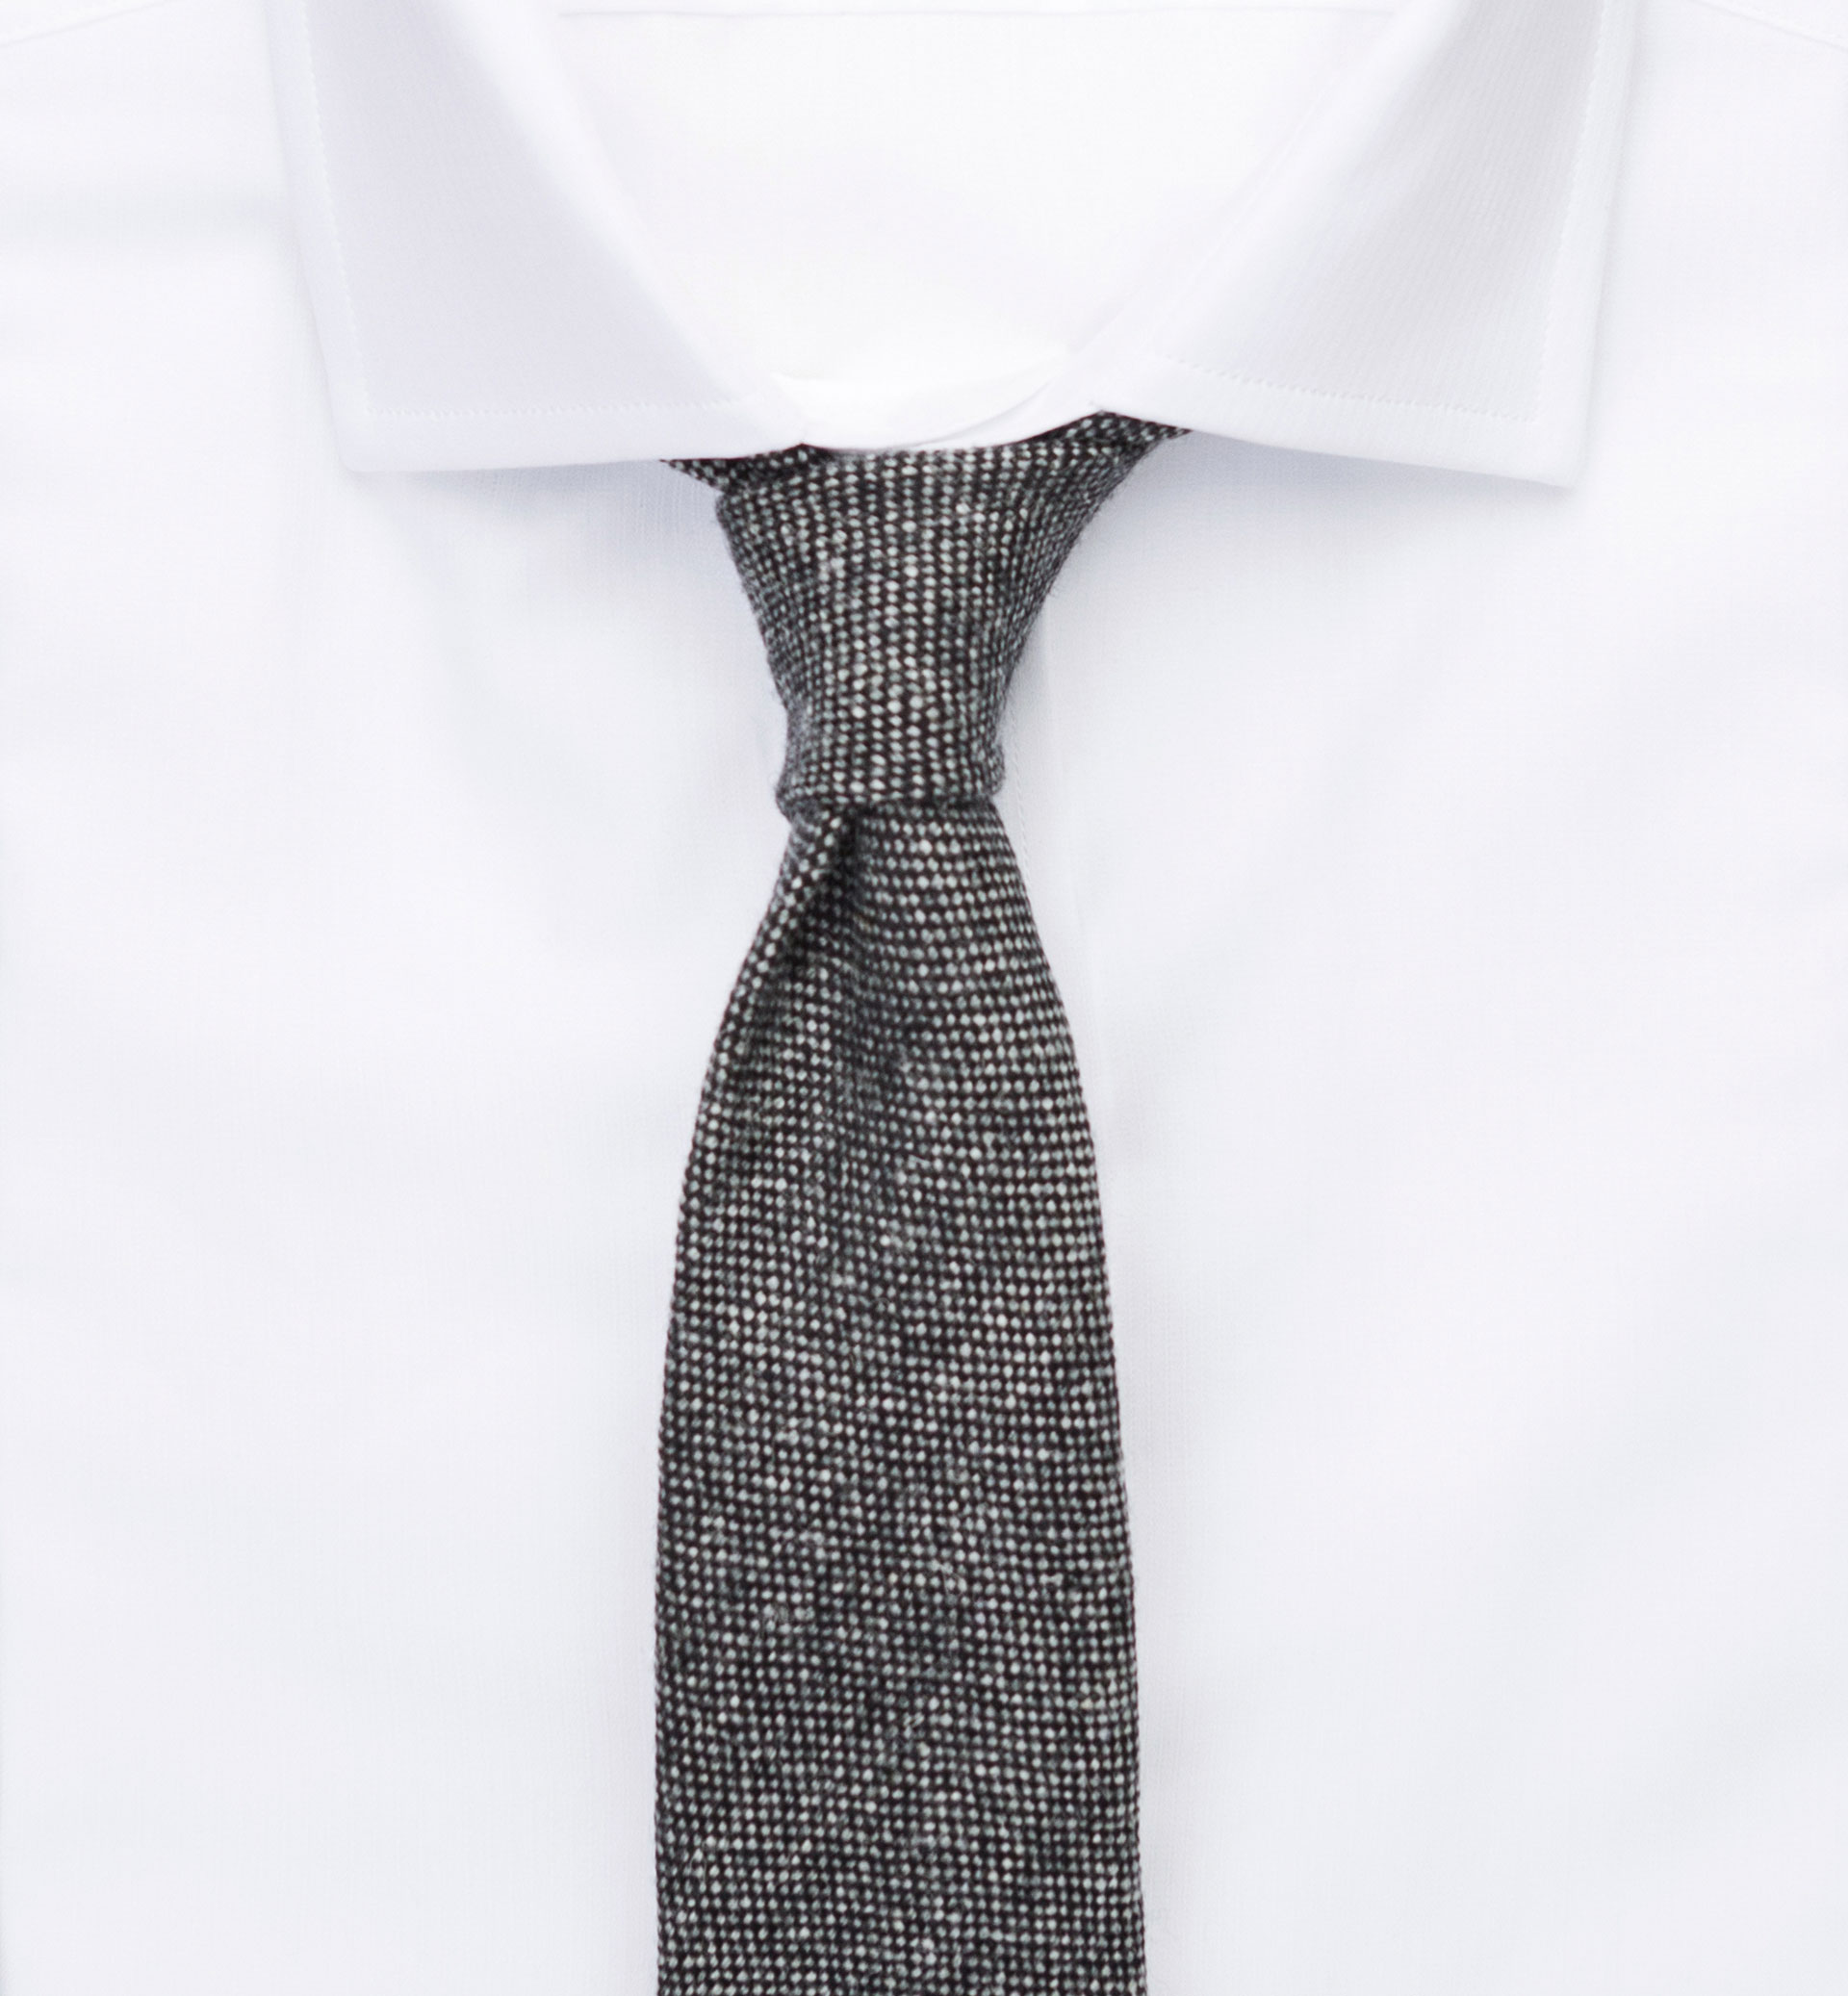 PERSONAL TAILORING FALSE PLAIN GREY RUSTIC TIE